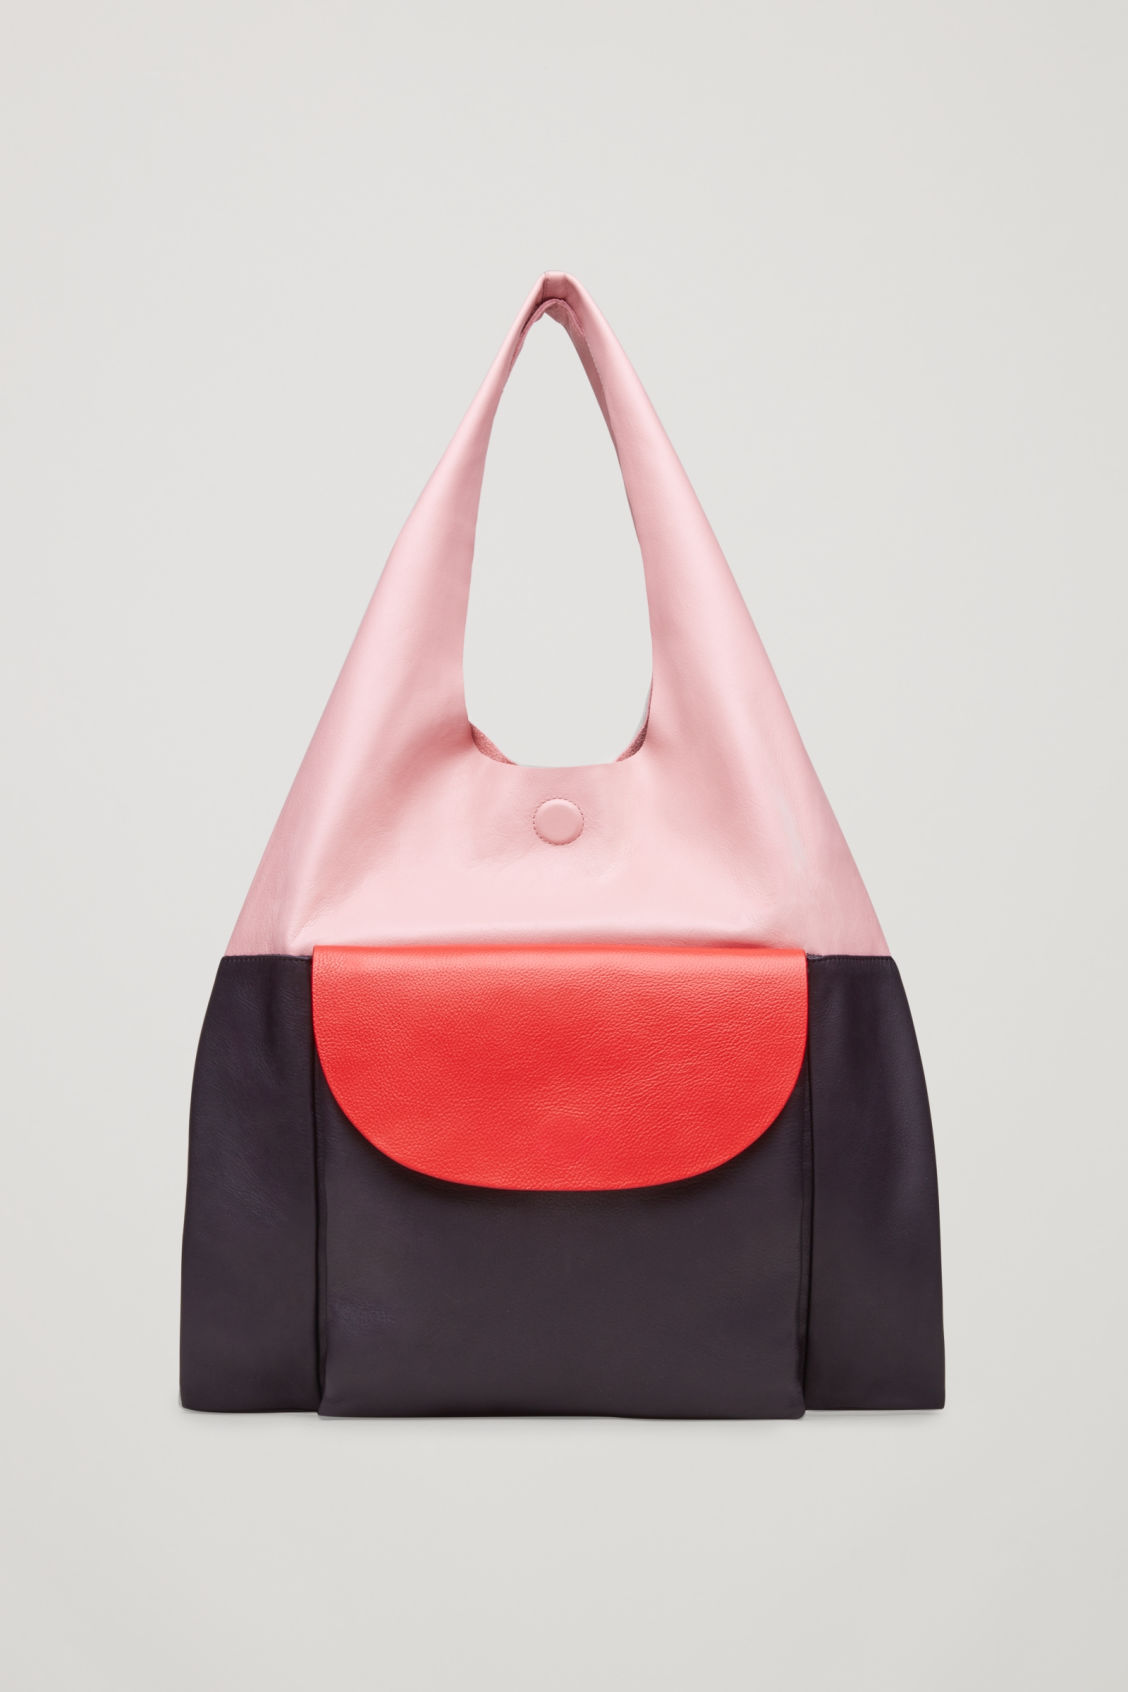 Cos COLOUR-BLOCK LEATHER TOTE BAG - PINK